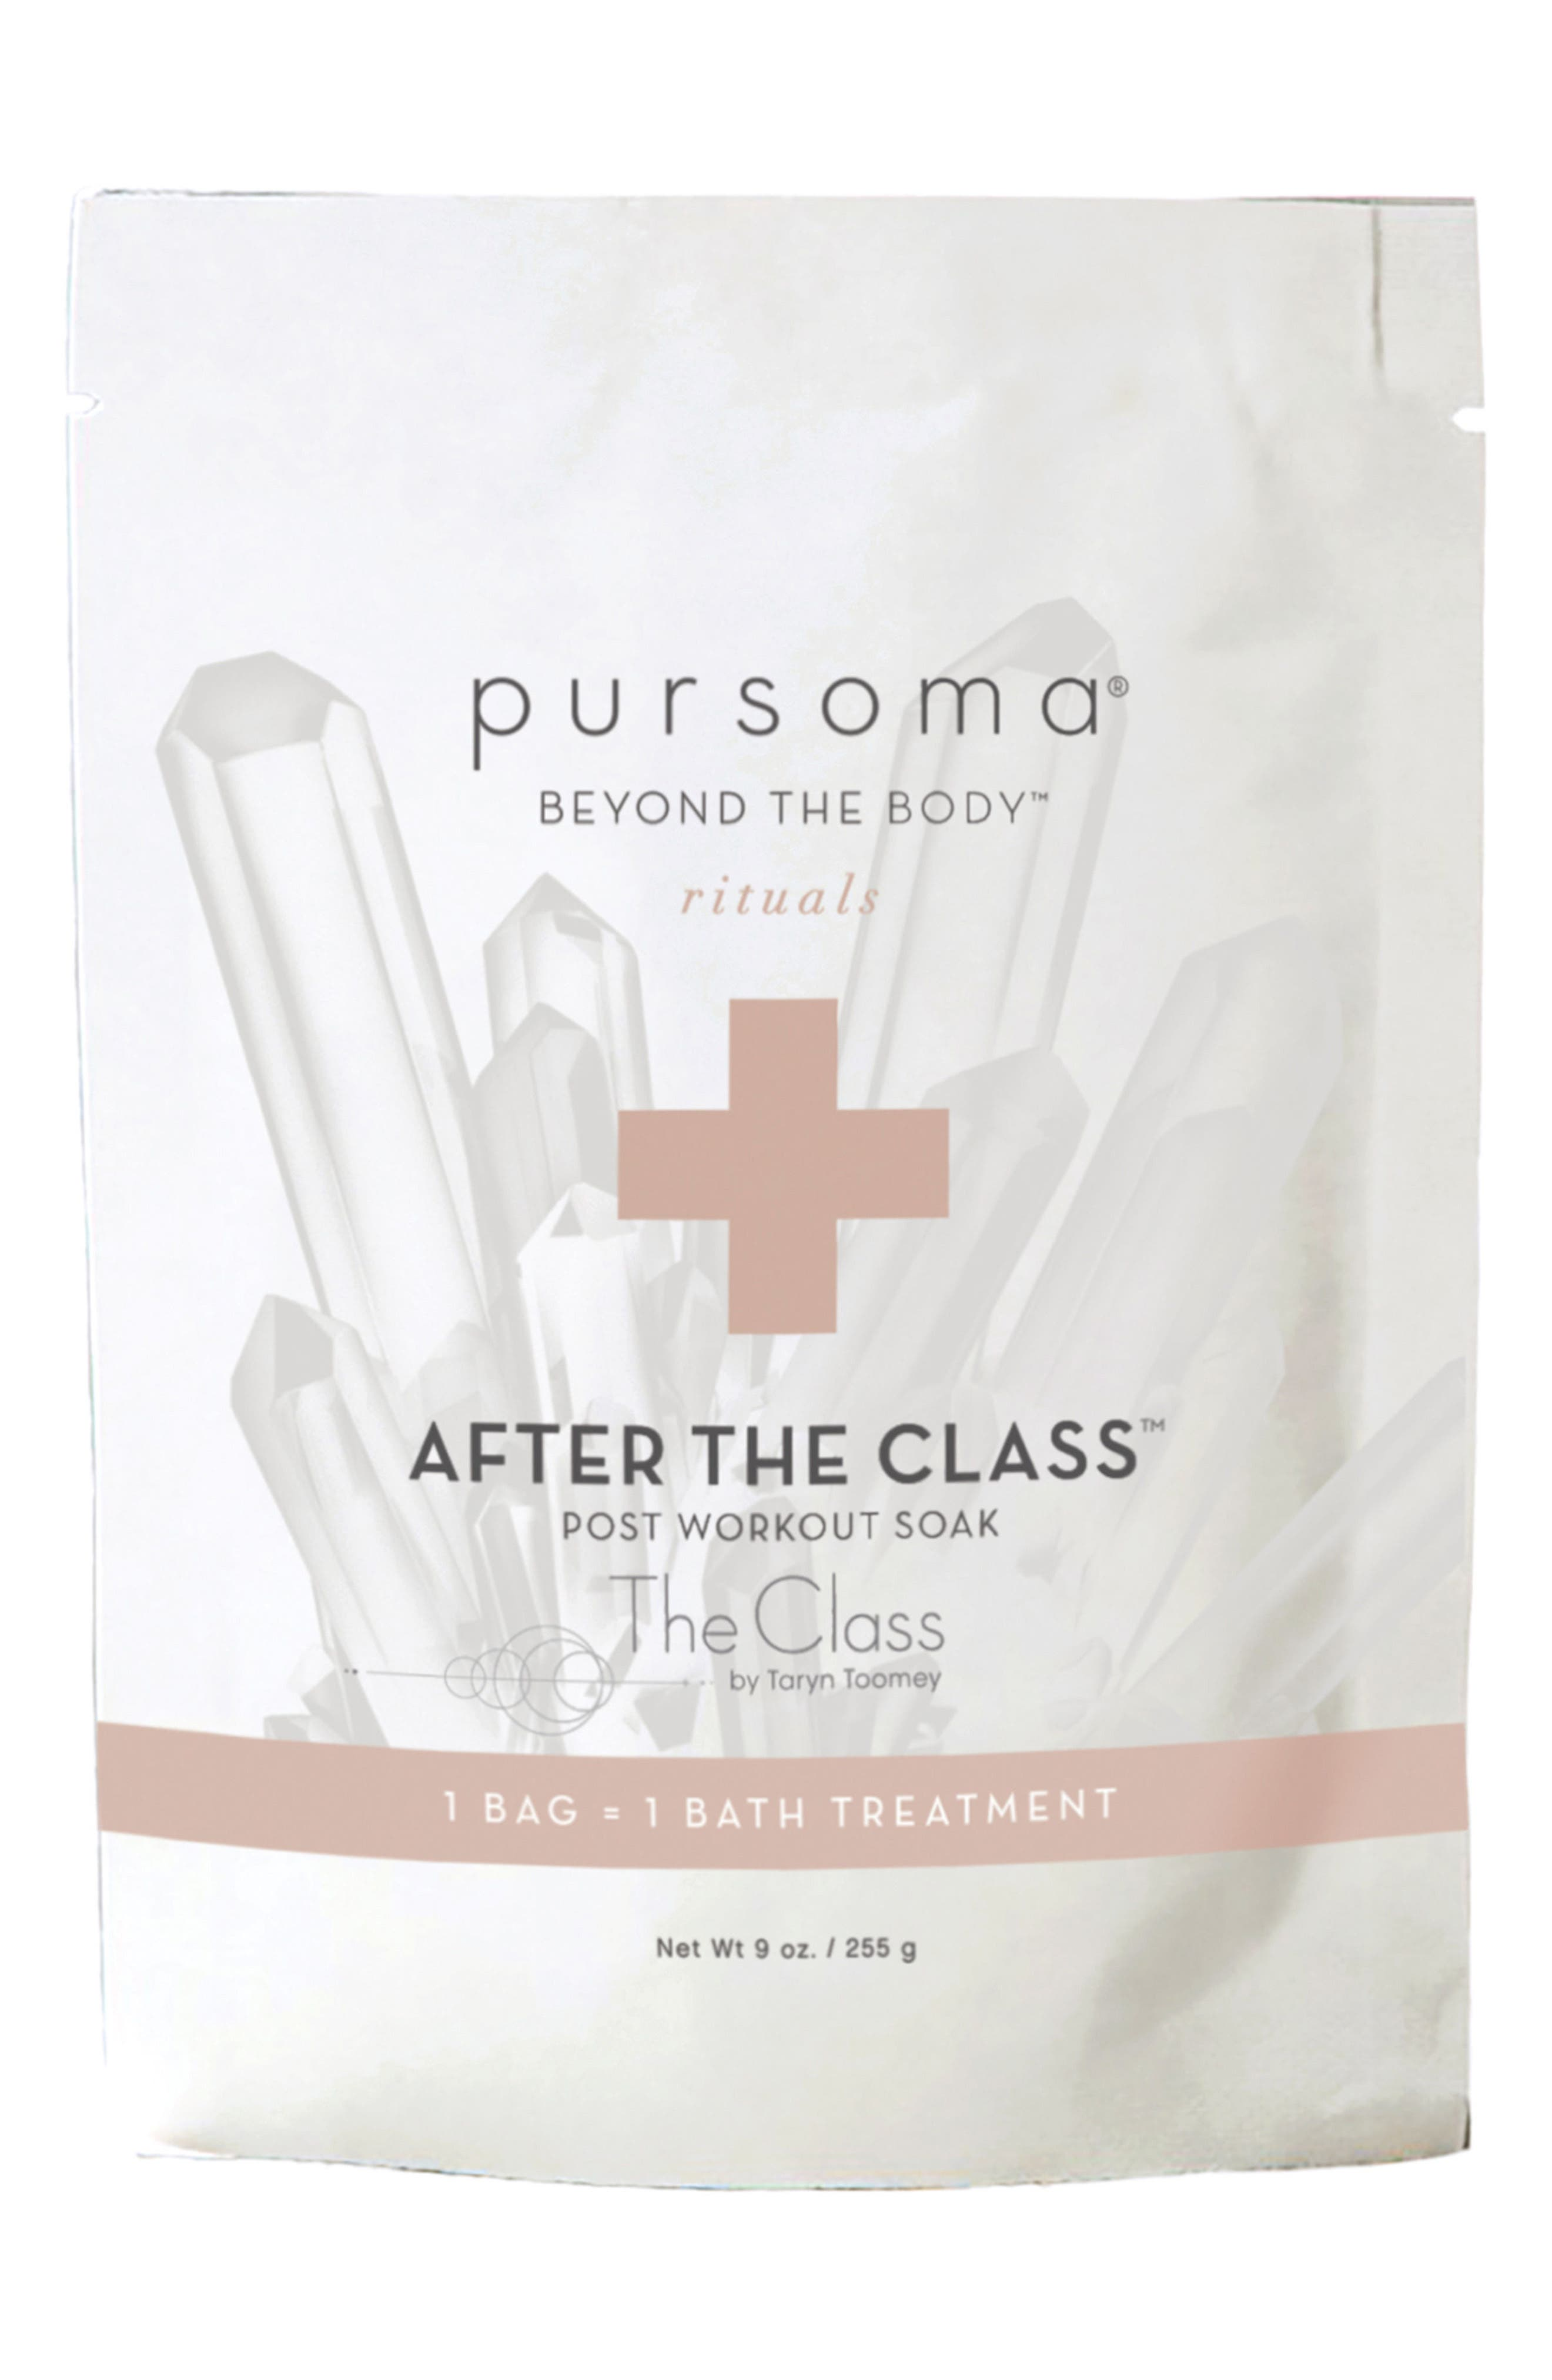 PURSOMA AFTER THE CLASS POST WORKOUT SOAK